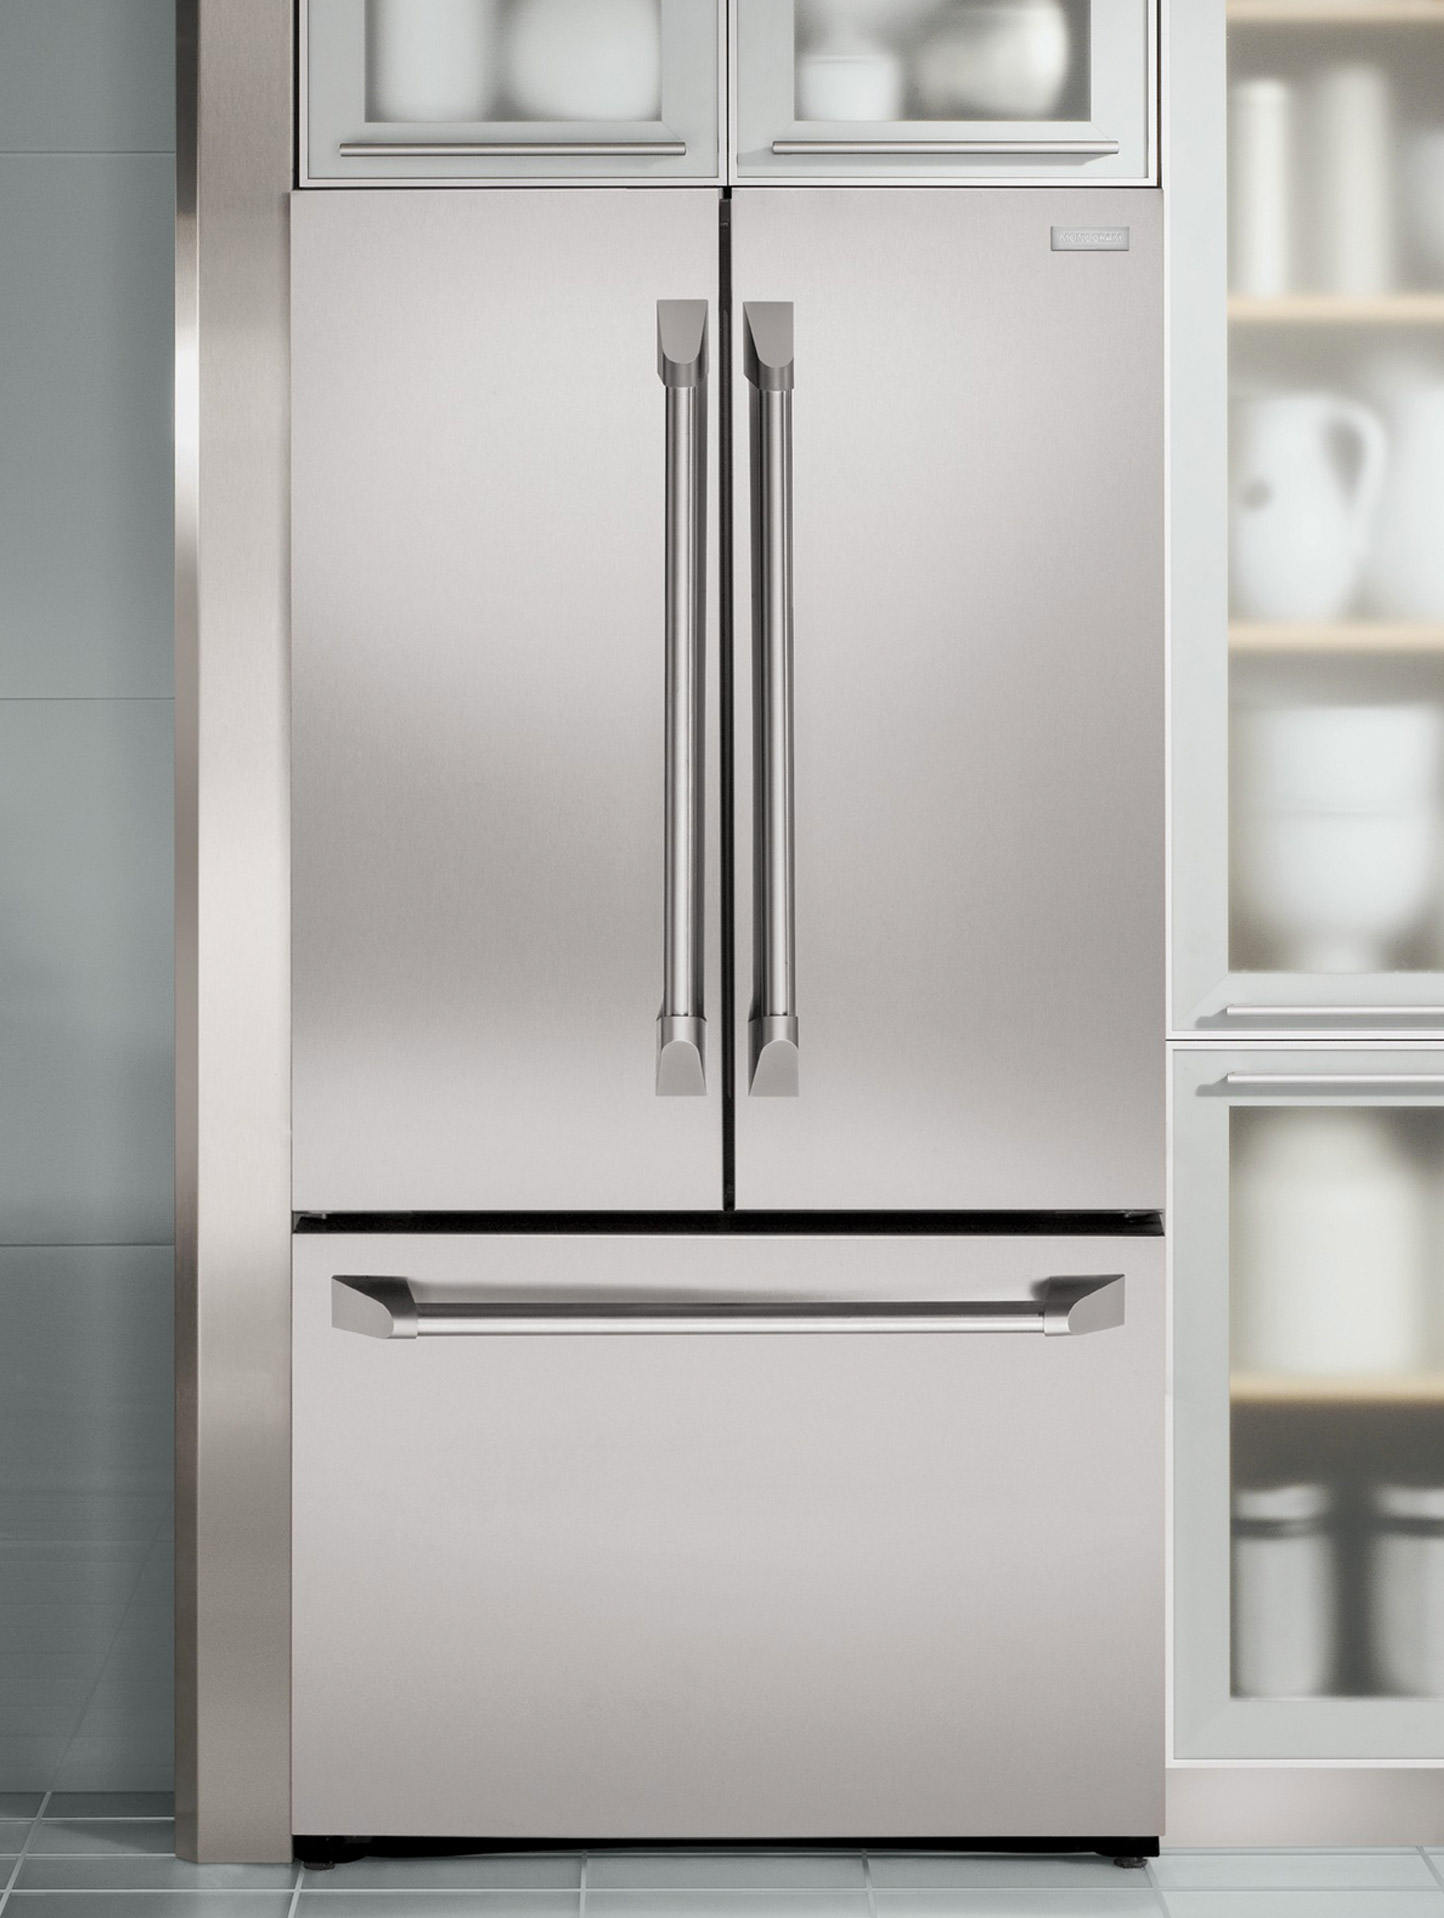 Incroyable Monogram Counter Depth Refrigerators Have A Slightly Shallower Depth, Which  Lines Up With Kitchen Countertops For A More Built In Appearance.